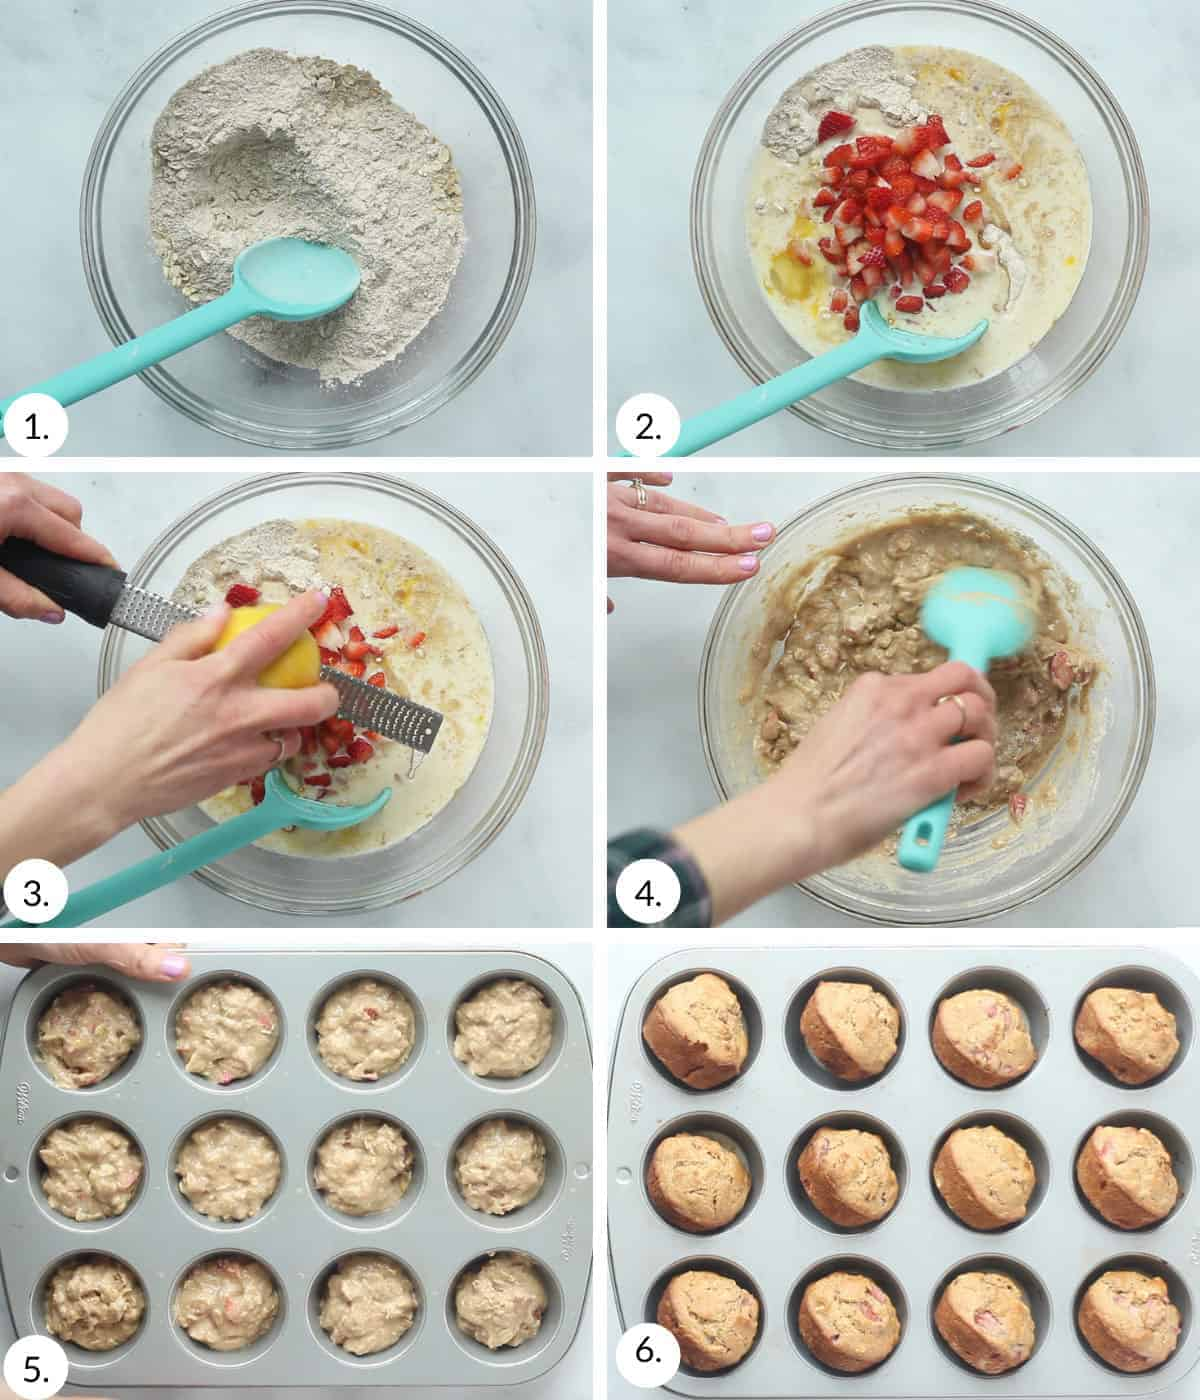 how to make strawberry muffins step by step